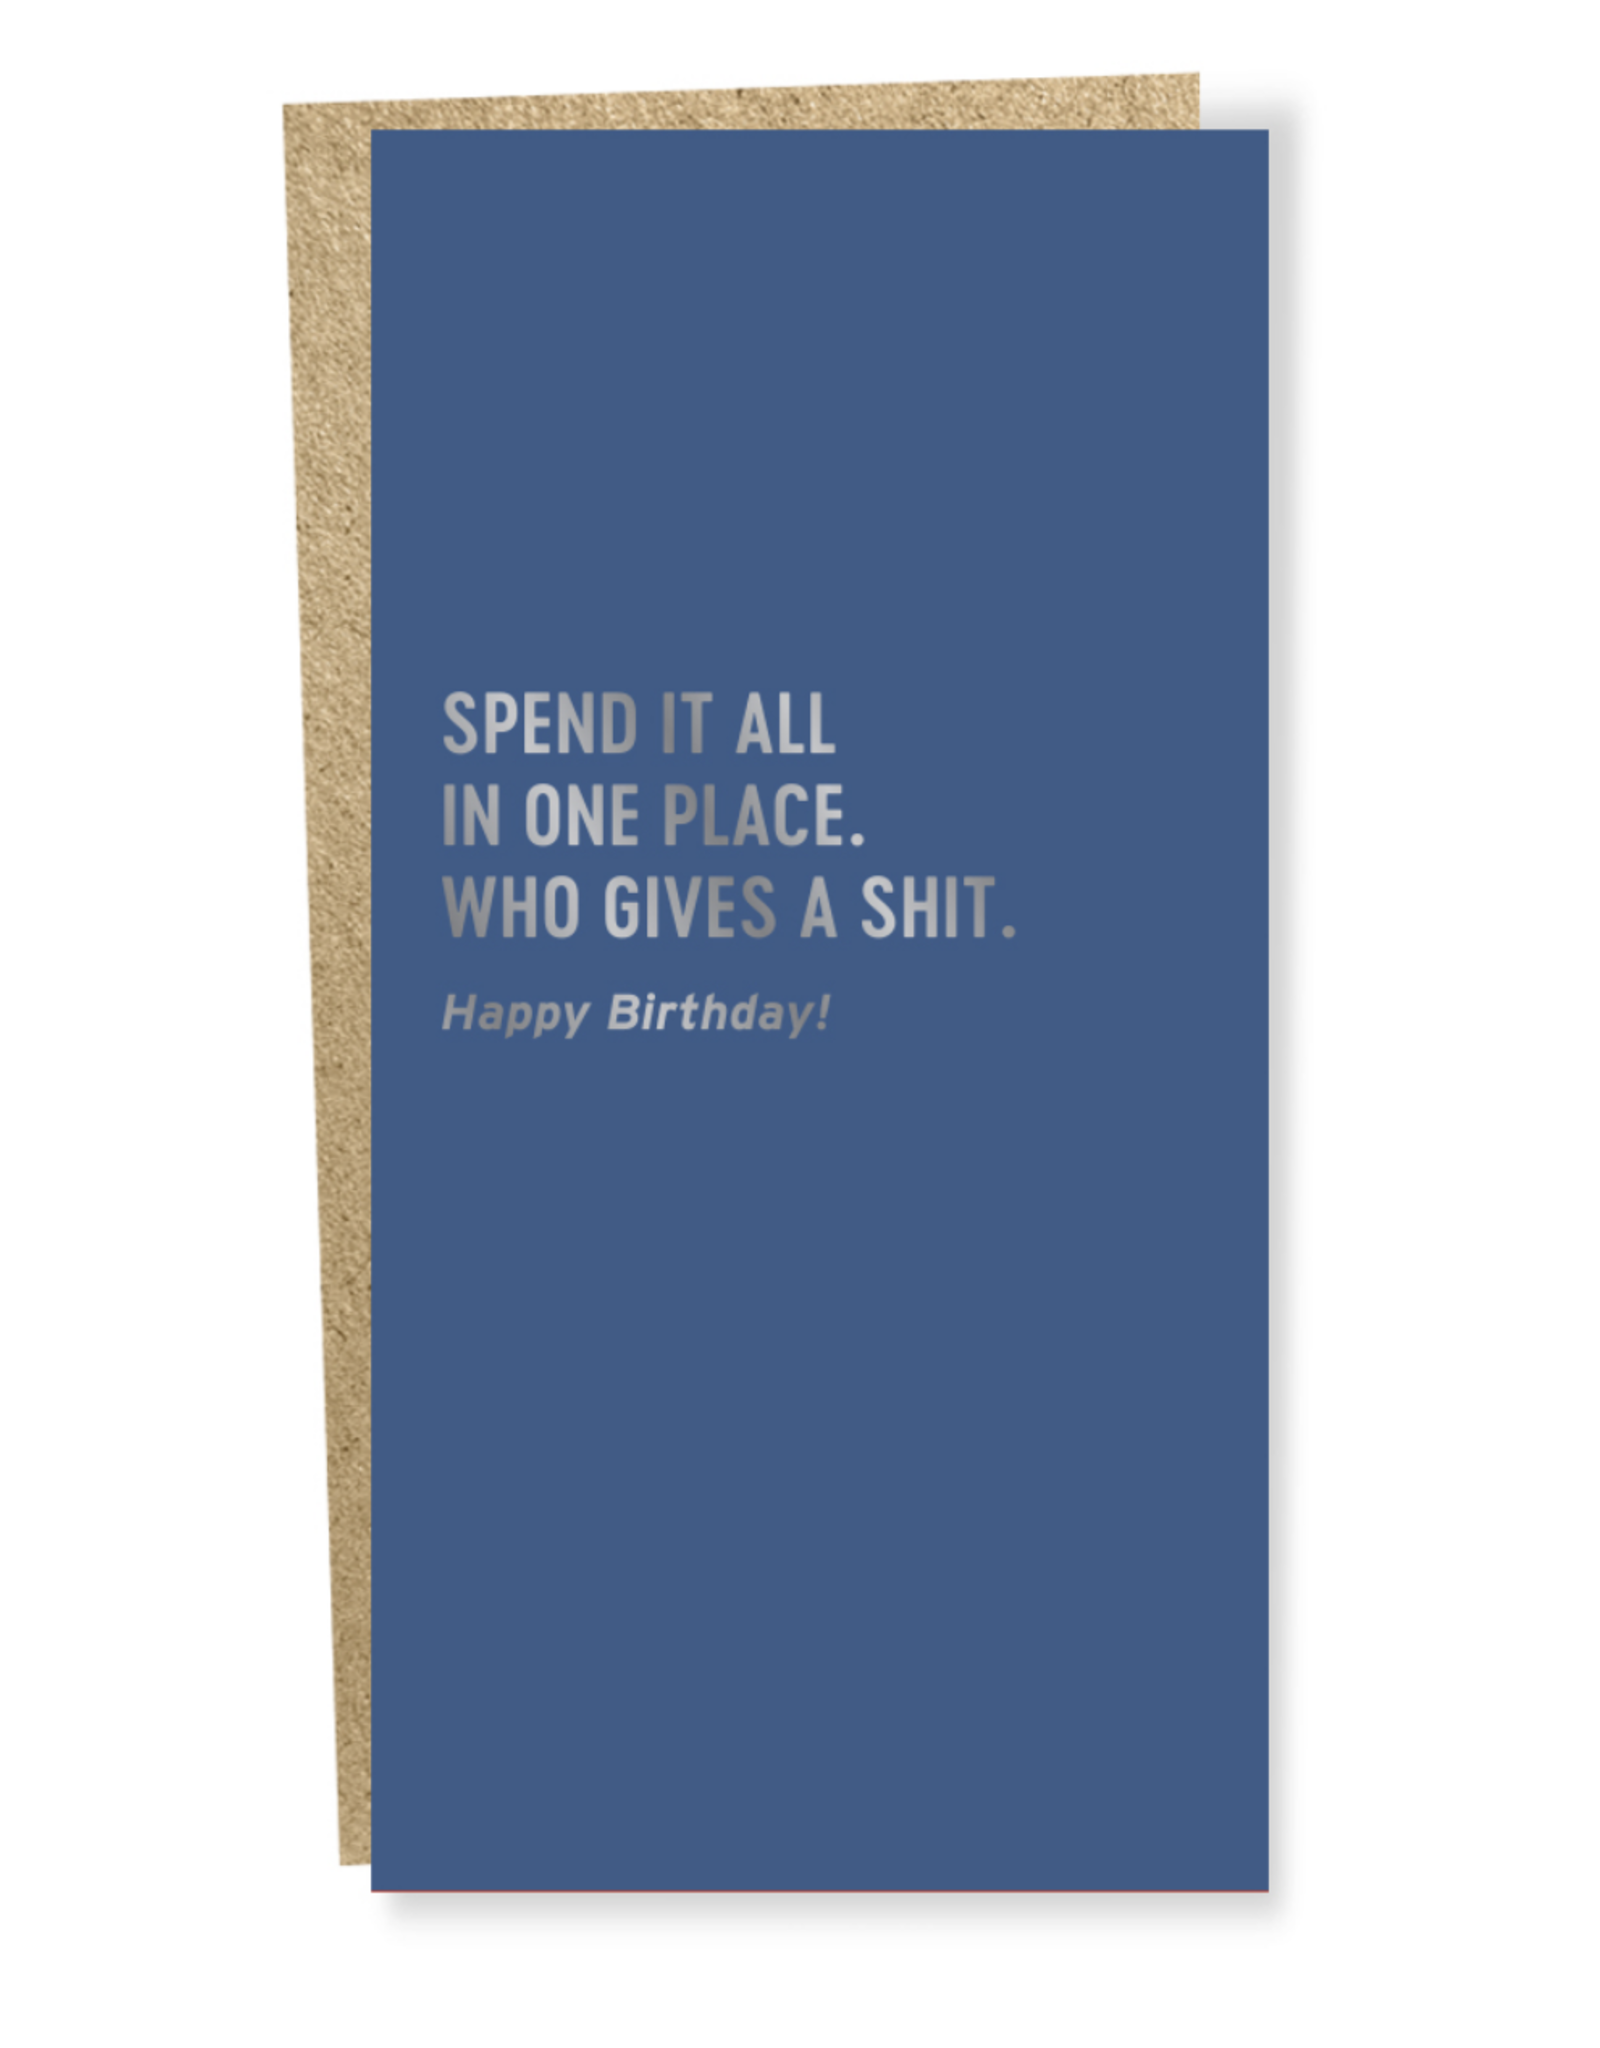 Spend It All in One Place Happy Birthday!  Greeting Card